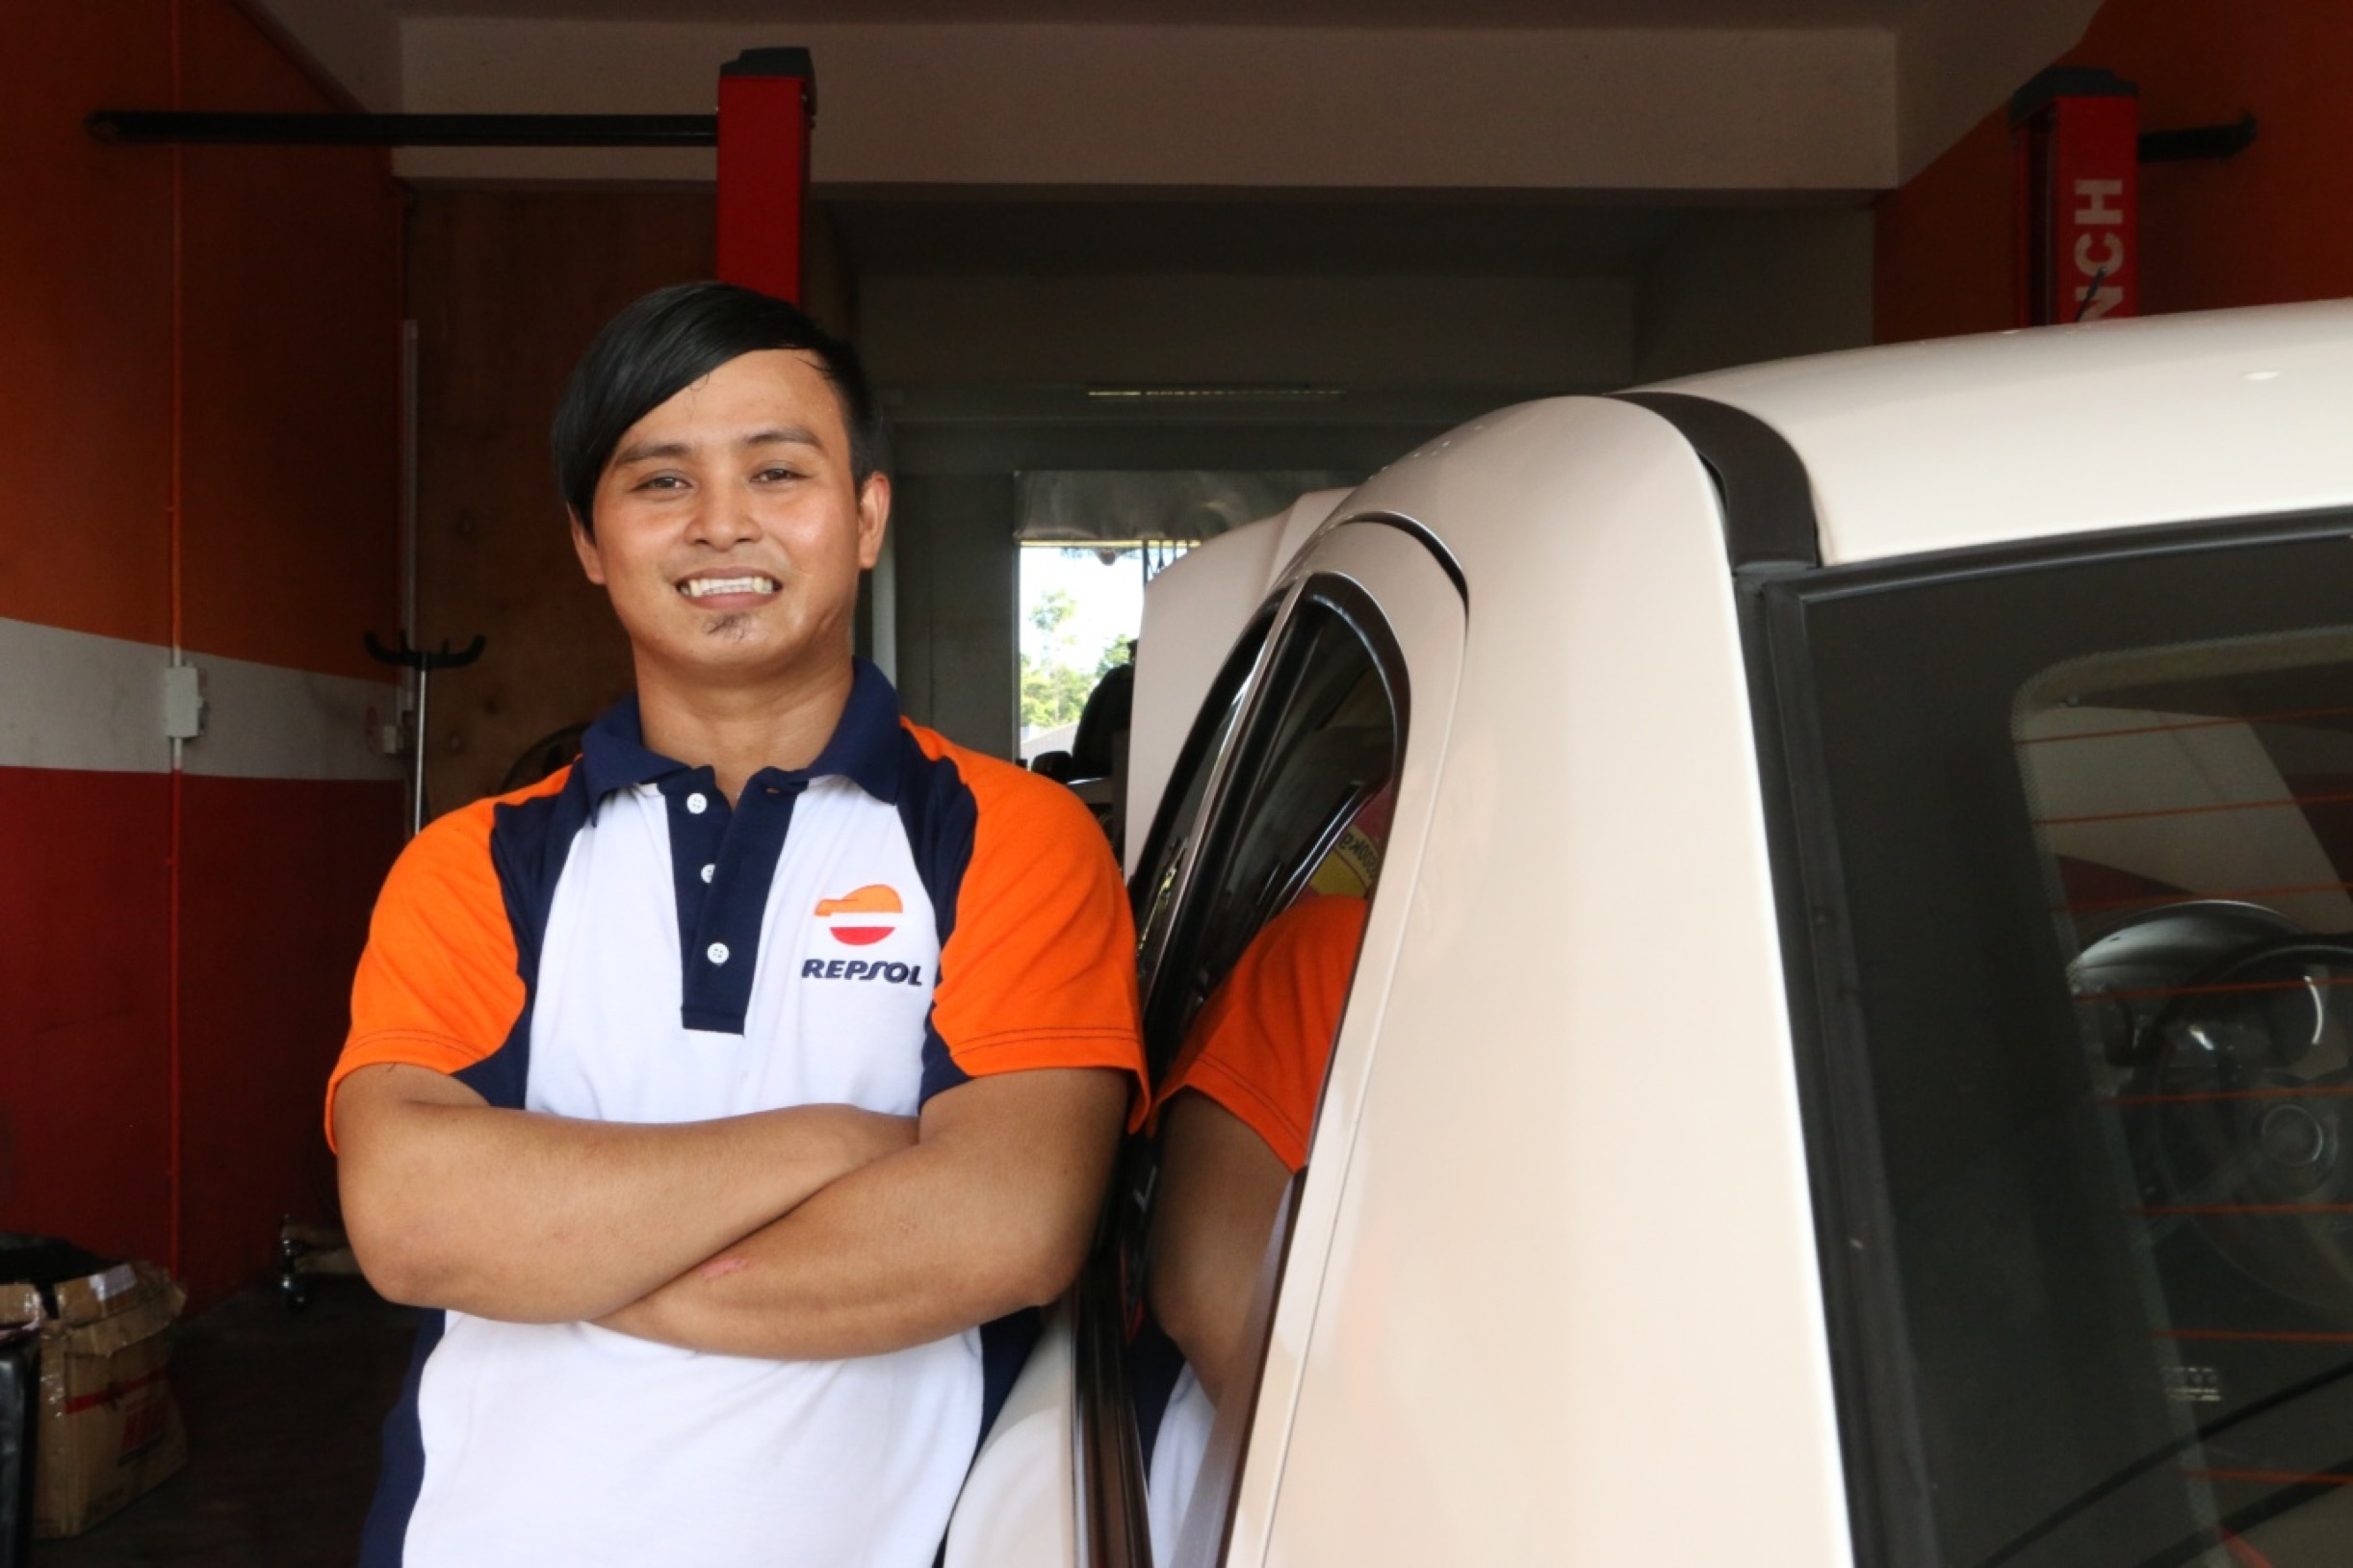 From car wash attendant to car workshop owner